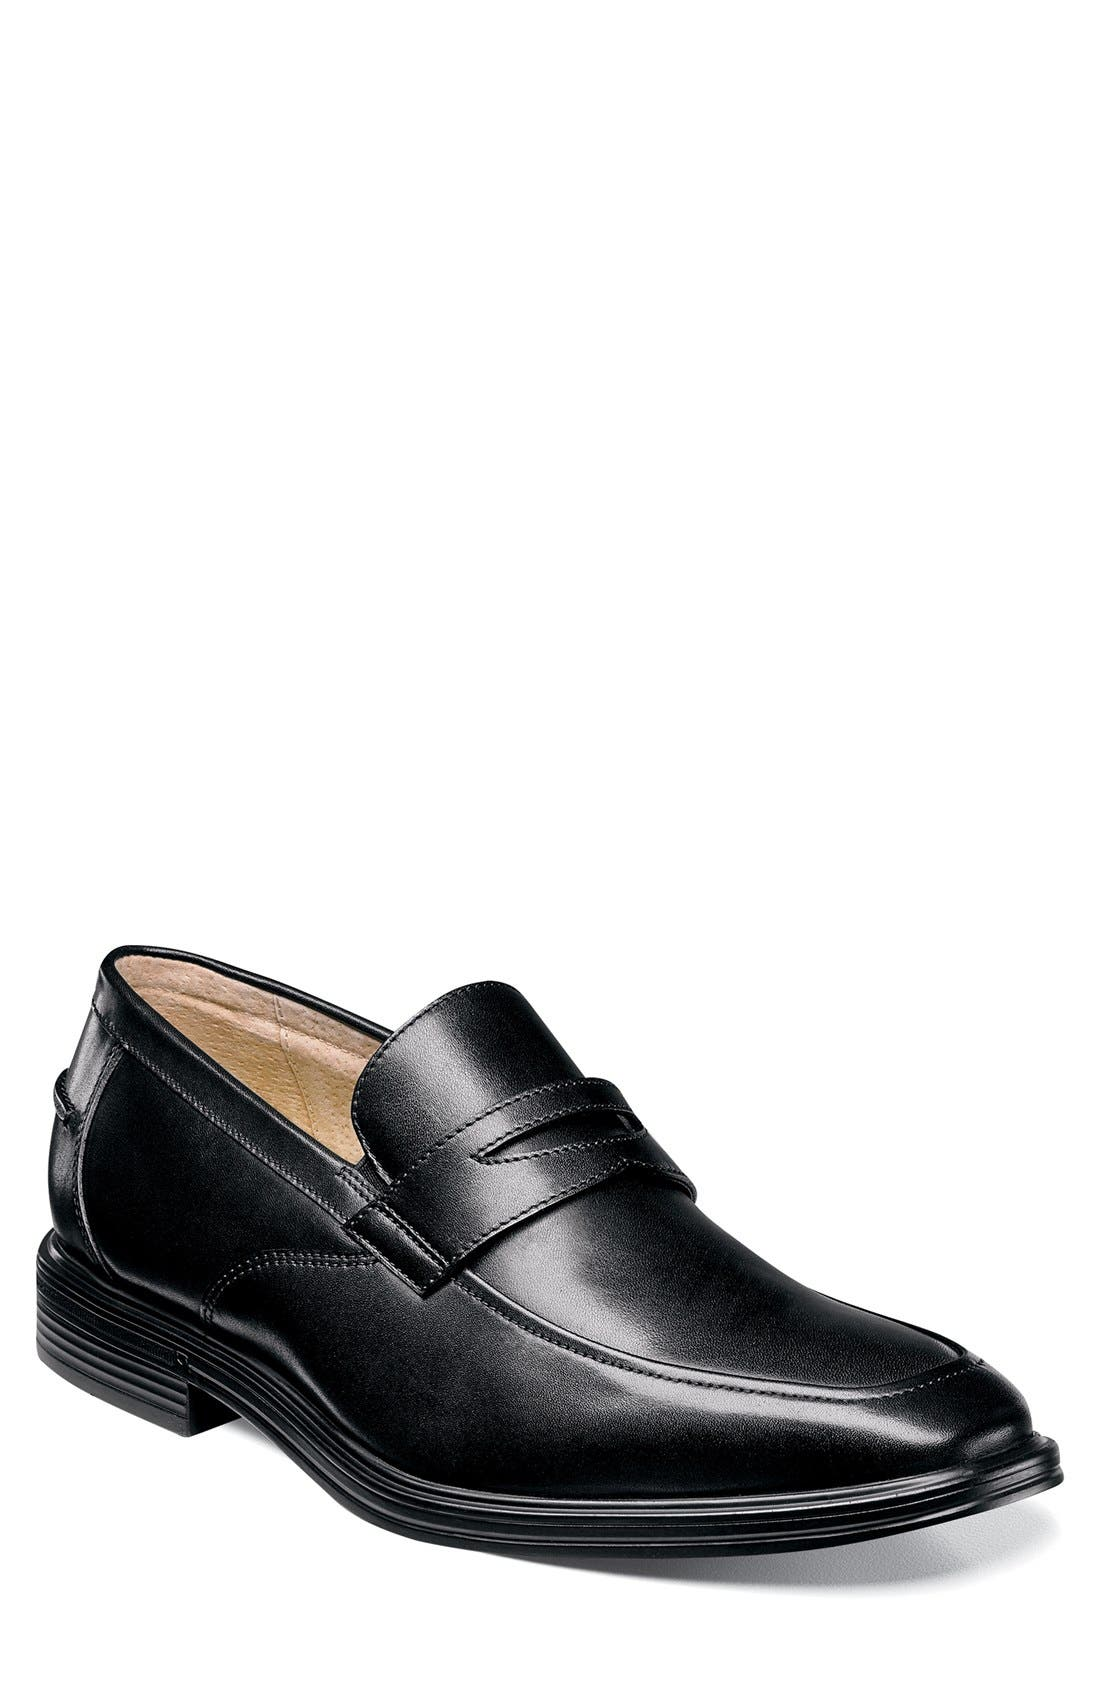 'Heights' Penny Loafer,                             Main thumbnail 1, color,                             Black Leather